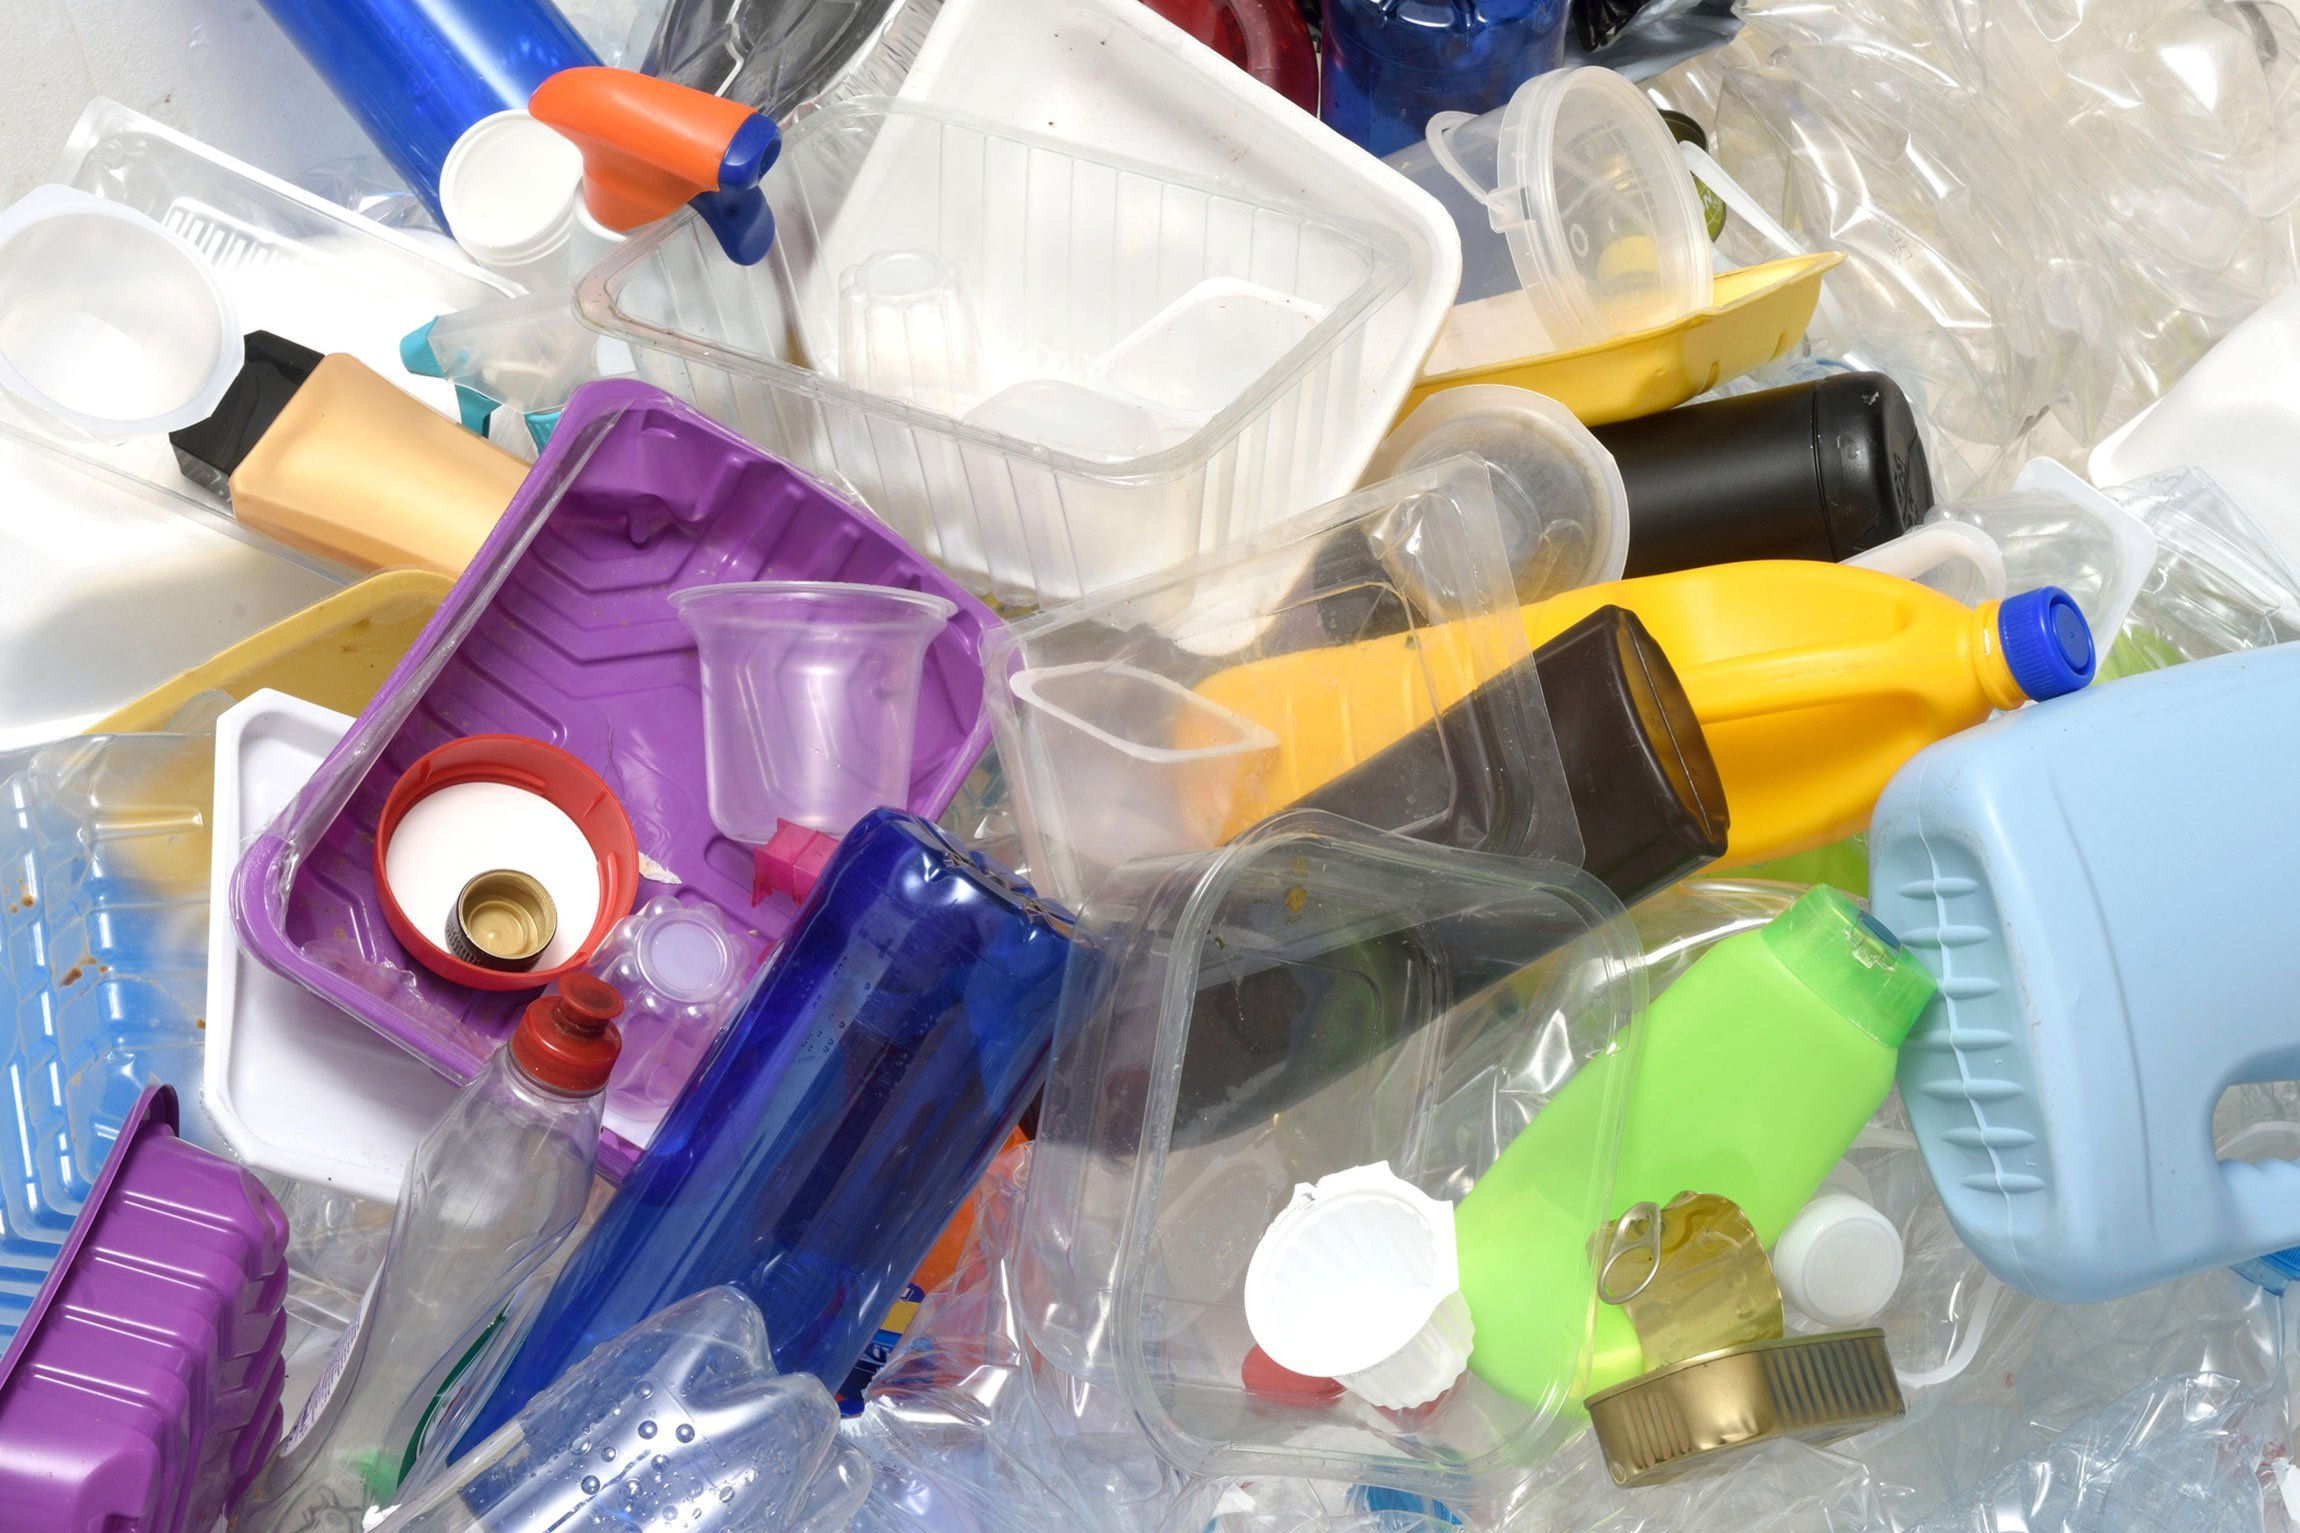 393abce6c9f3 Single-Use Plastics  How You Can Help Solve the Plastic Problem